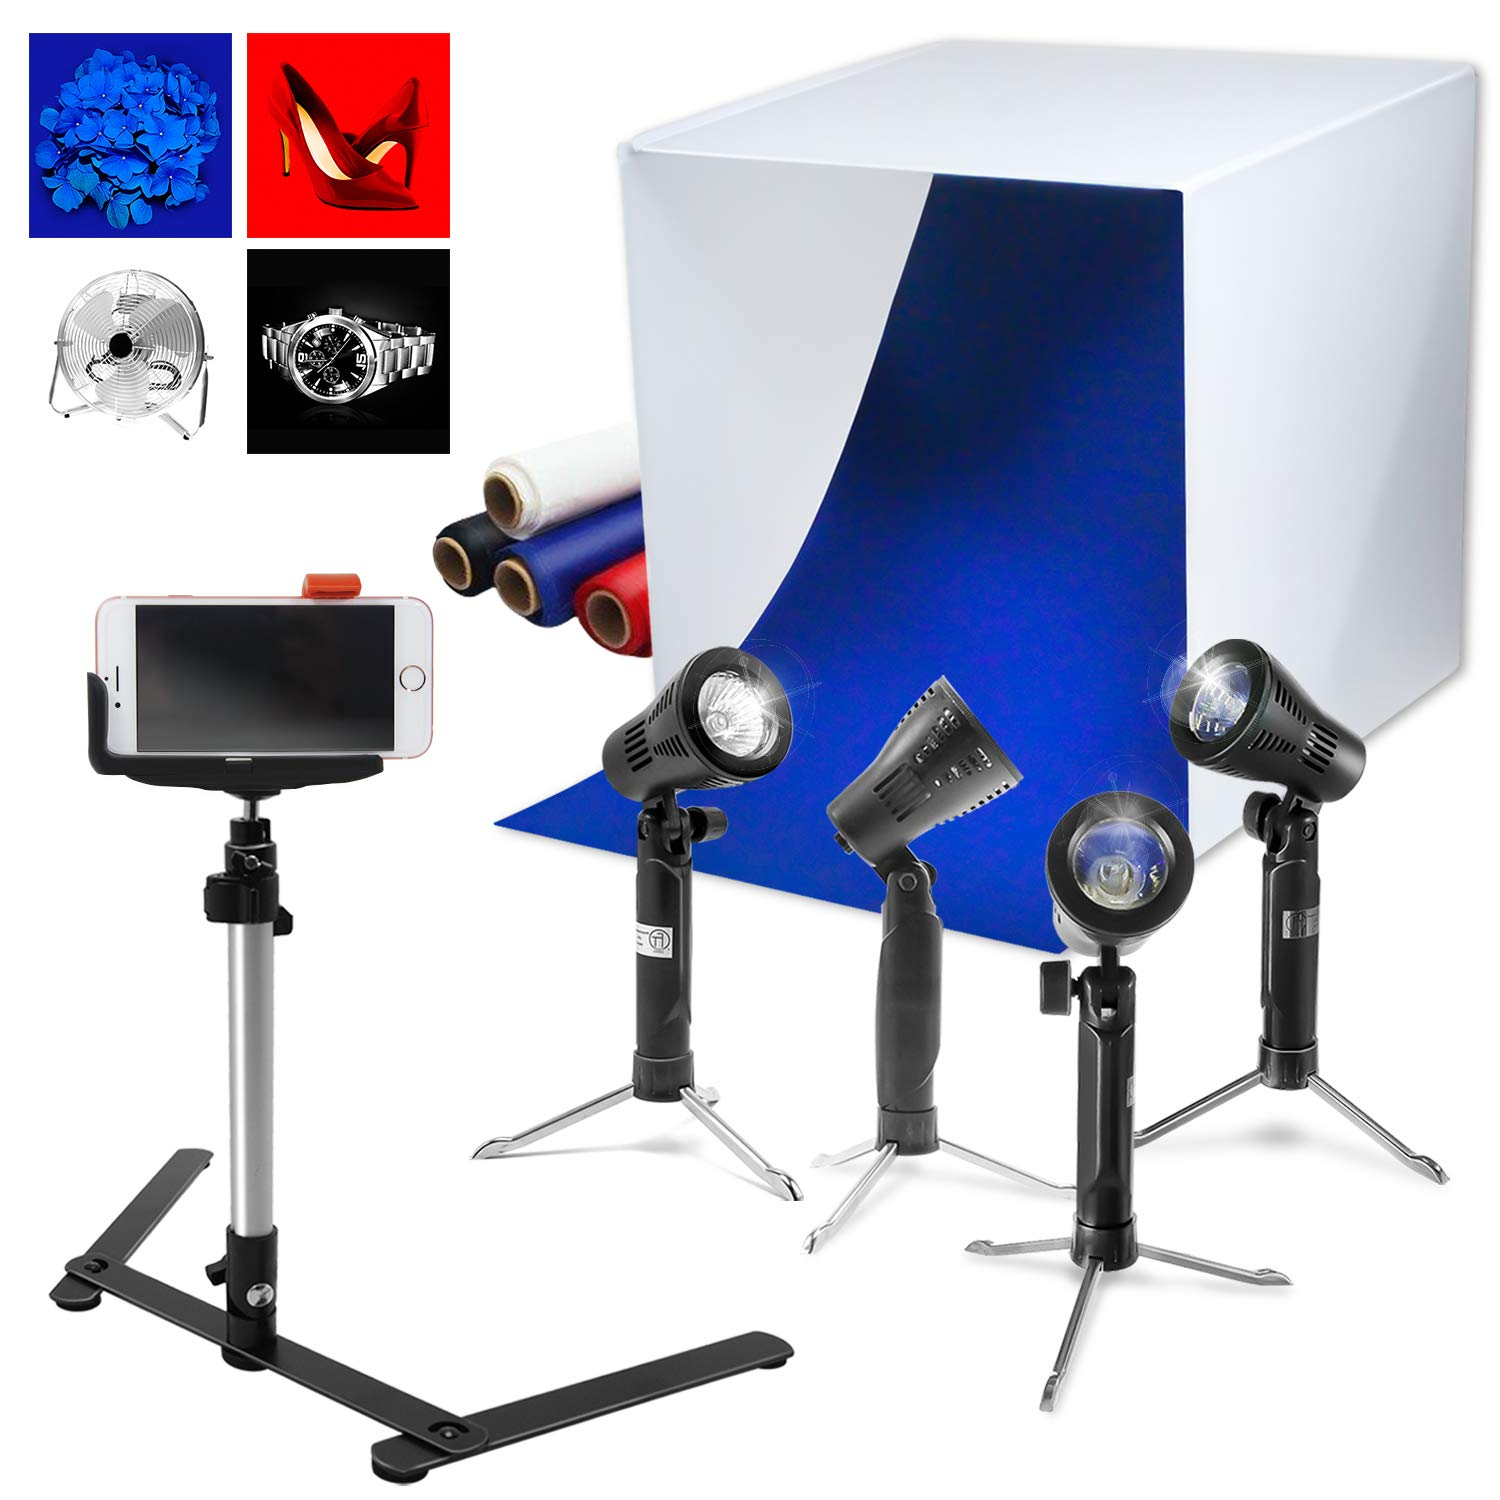 LimoStudio 24 x 24'' Cubic White Photo Box Tent, LED Table Top Light with Stand Legs, Mini Camera Stand, Cellphone Clip, Photo Video Studio, AGG1071 by LimoStudio